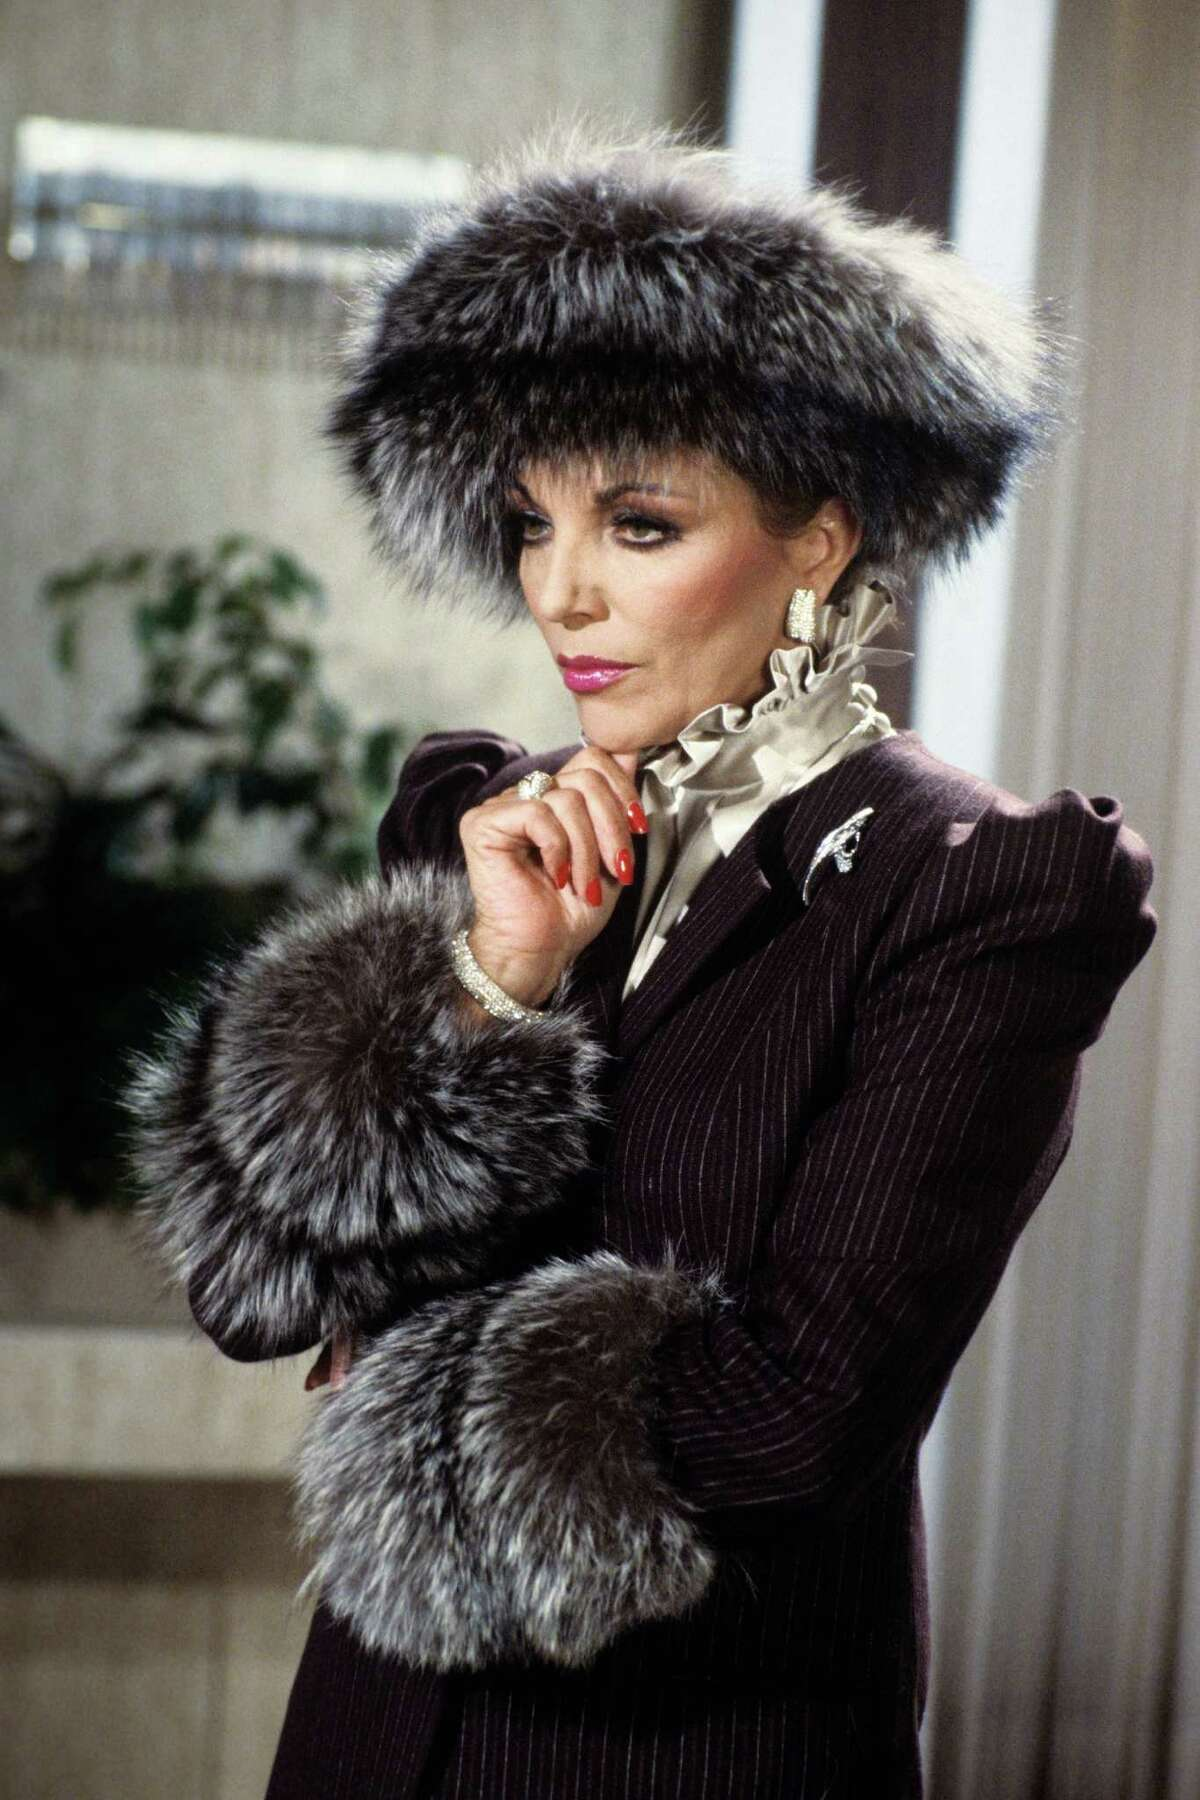 Alexis Colby, Dynasty The queen of snark defined '80s glamour with a wardrobe full of fur, ruffles, lamé and shoulder pads. Alot of shoulder pads. The Best Fashion Blogger Instagrams to FollowThe Prettest Nude PolishesCelebrity Kids That Are Taking The SpotlightFabulous Fashion At Every AgeInspiring Celeb Denim LooksThis Season's It-Shoes